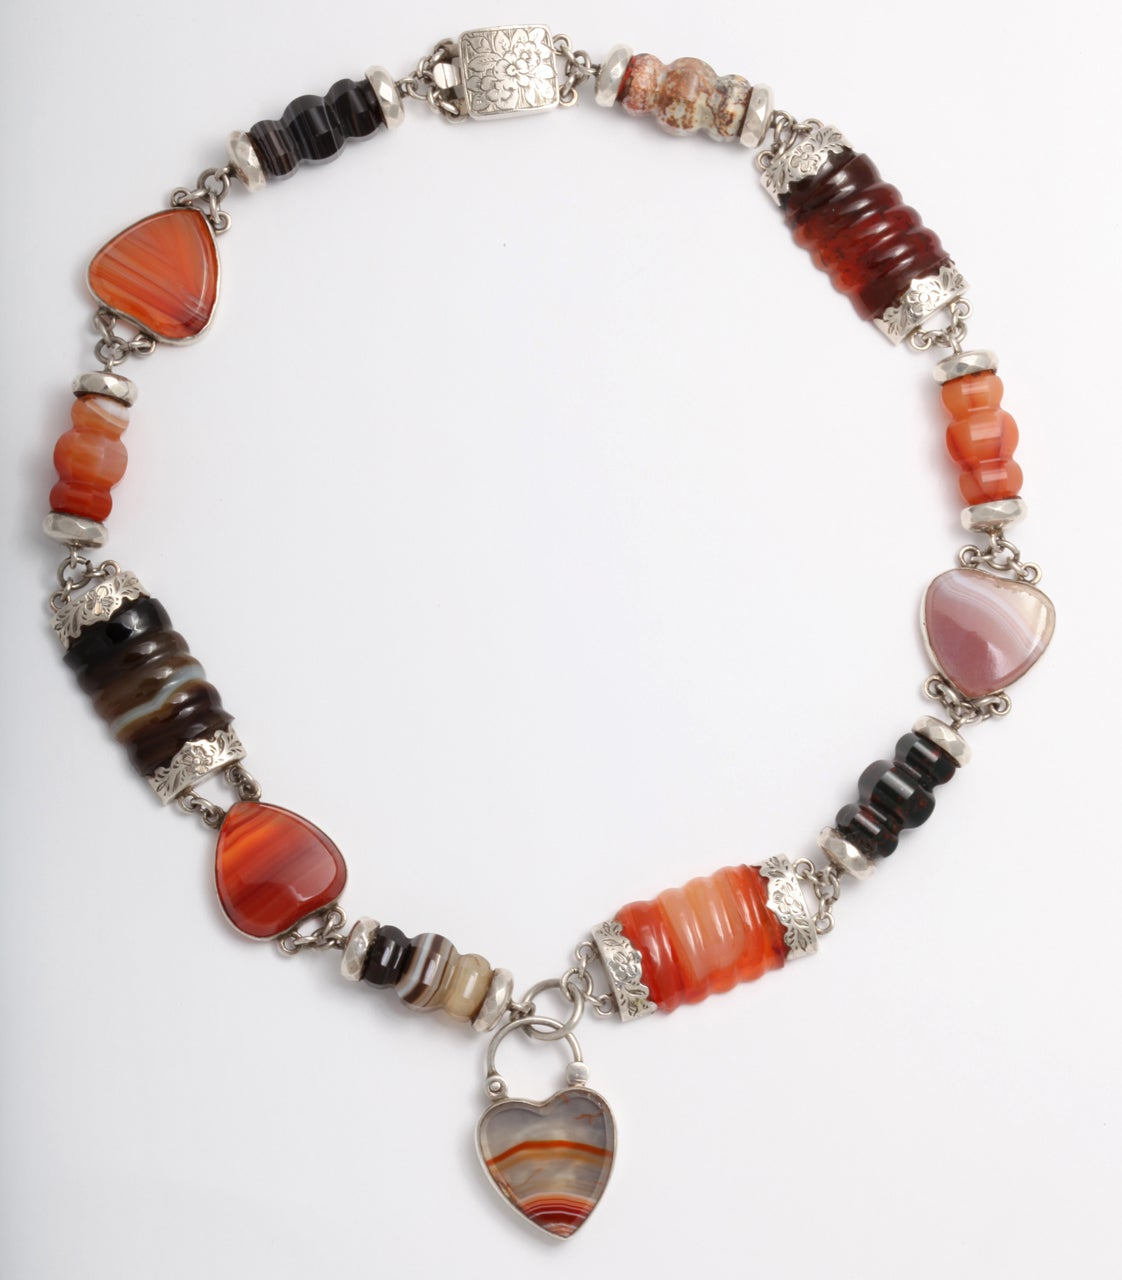 Carved and ridged banded agate and carnelian is set in engraved sterling then linked and interspersed with agate hearts.  The original clasp on this necklace is intact as is the floral engraved padlock with the same engraving that will sit near your